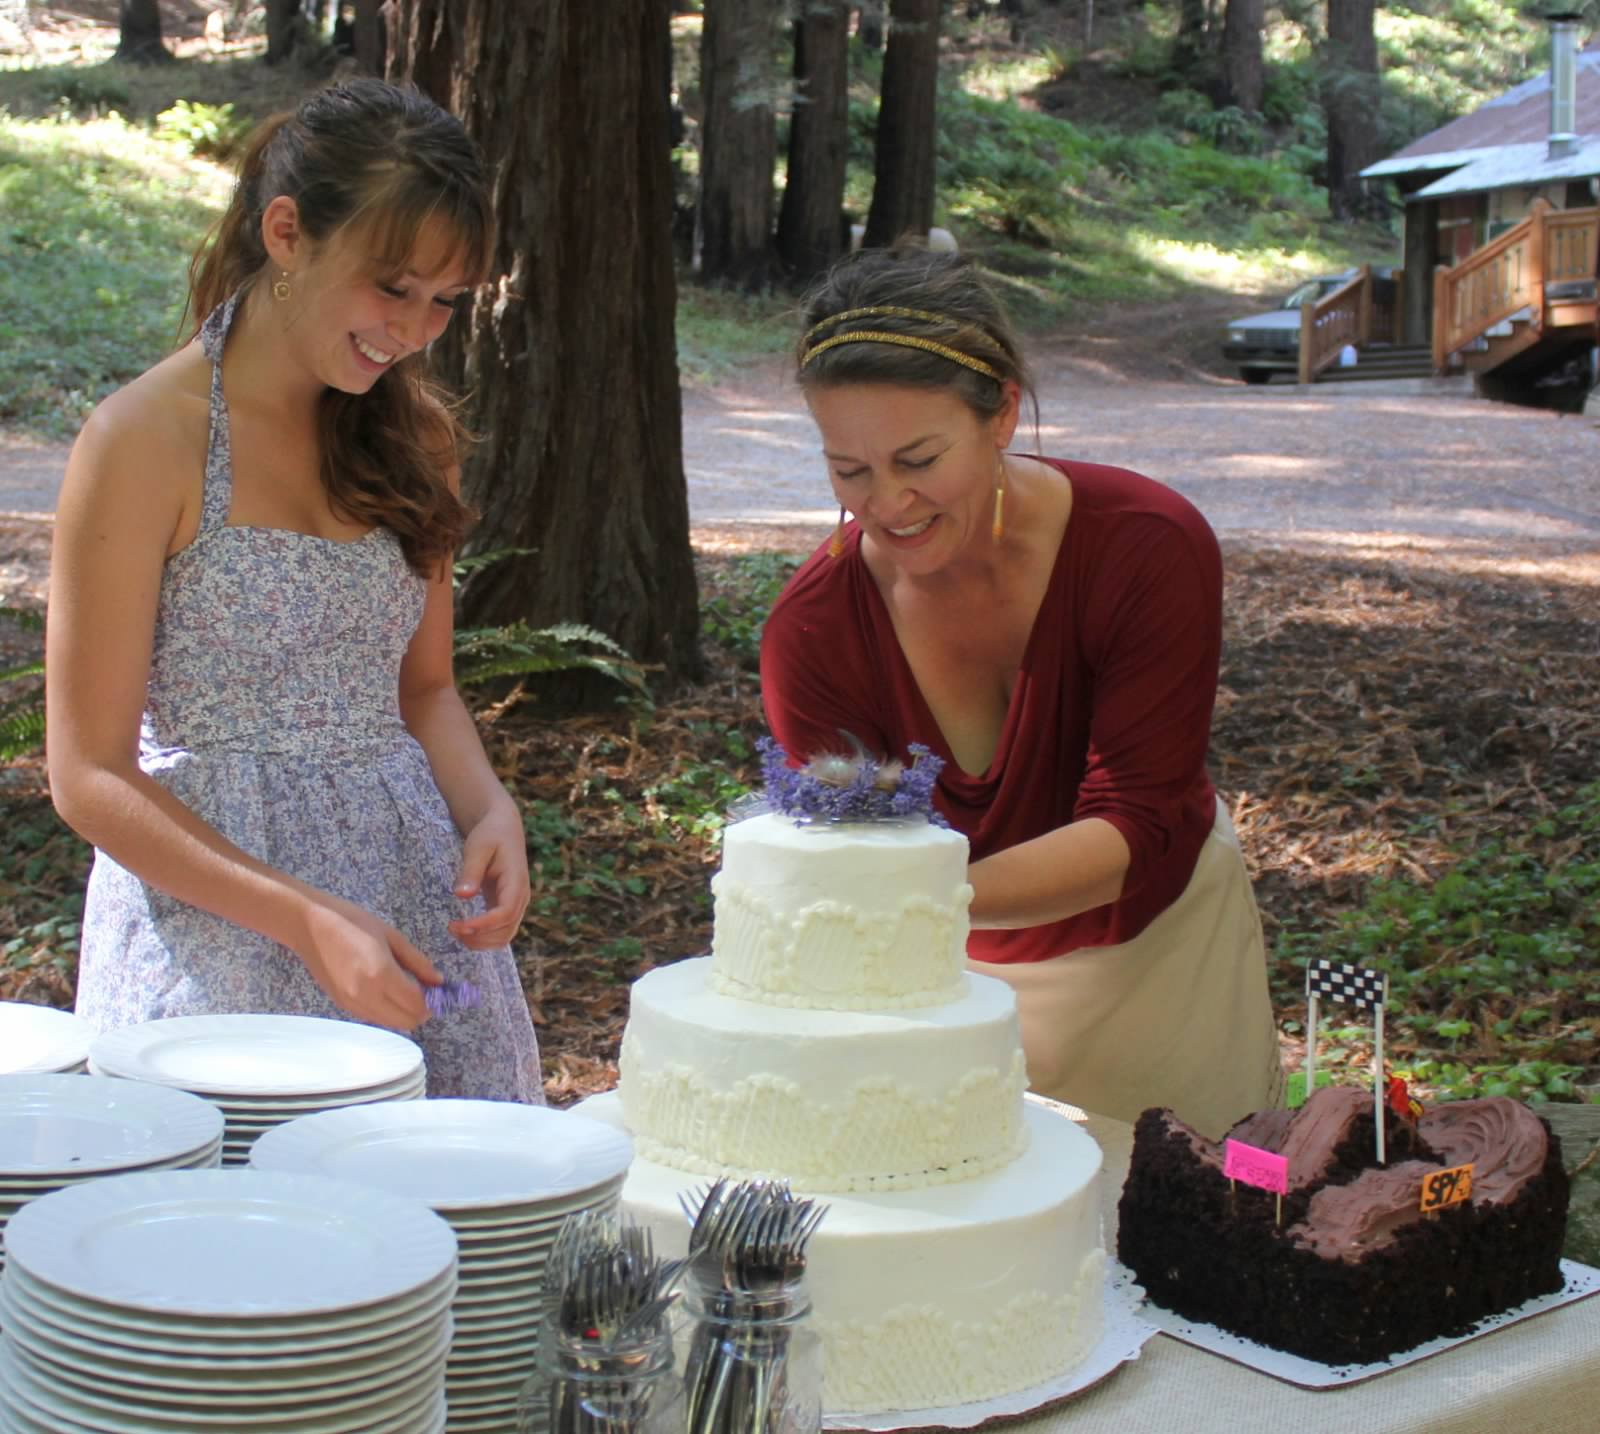 Carren & daughter Hannah - Every great Laughing Canyon celebration includes cake!